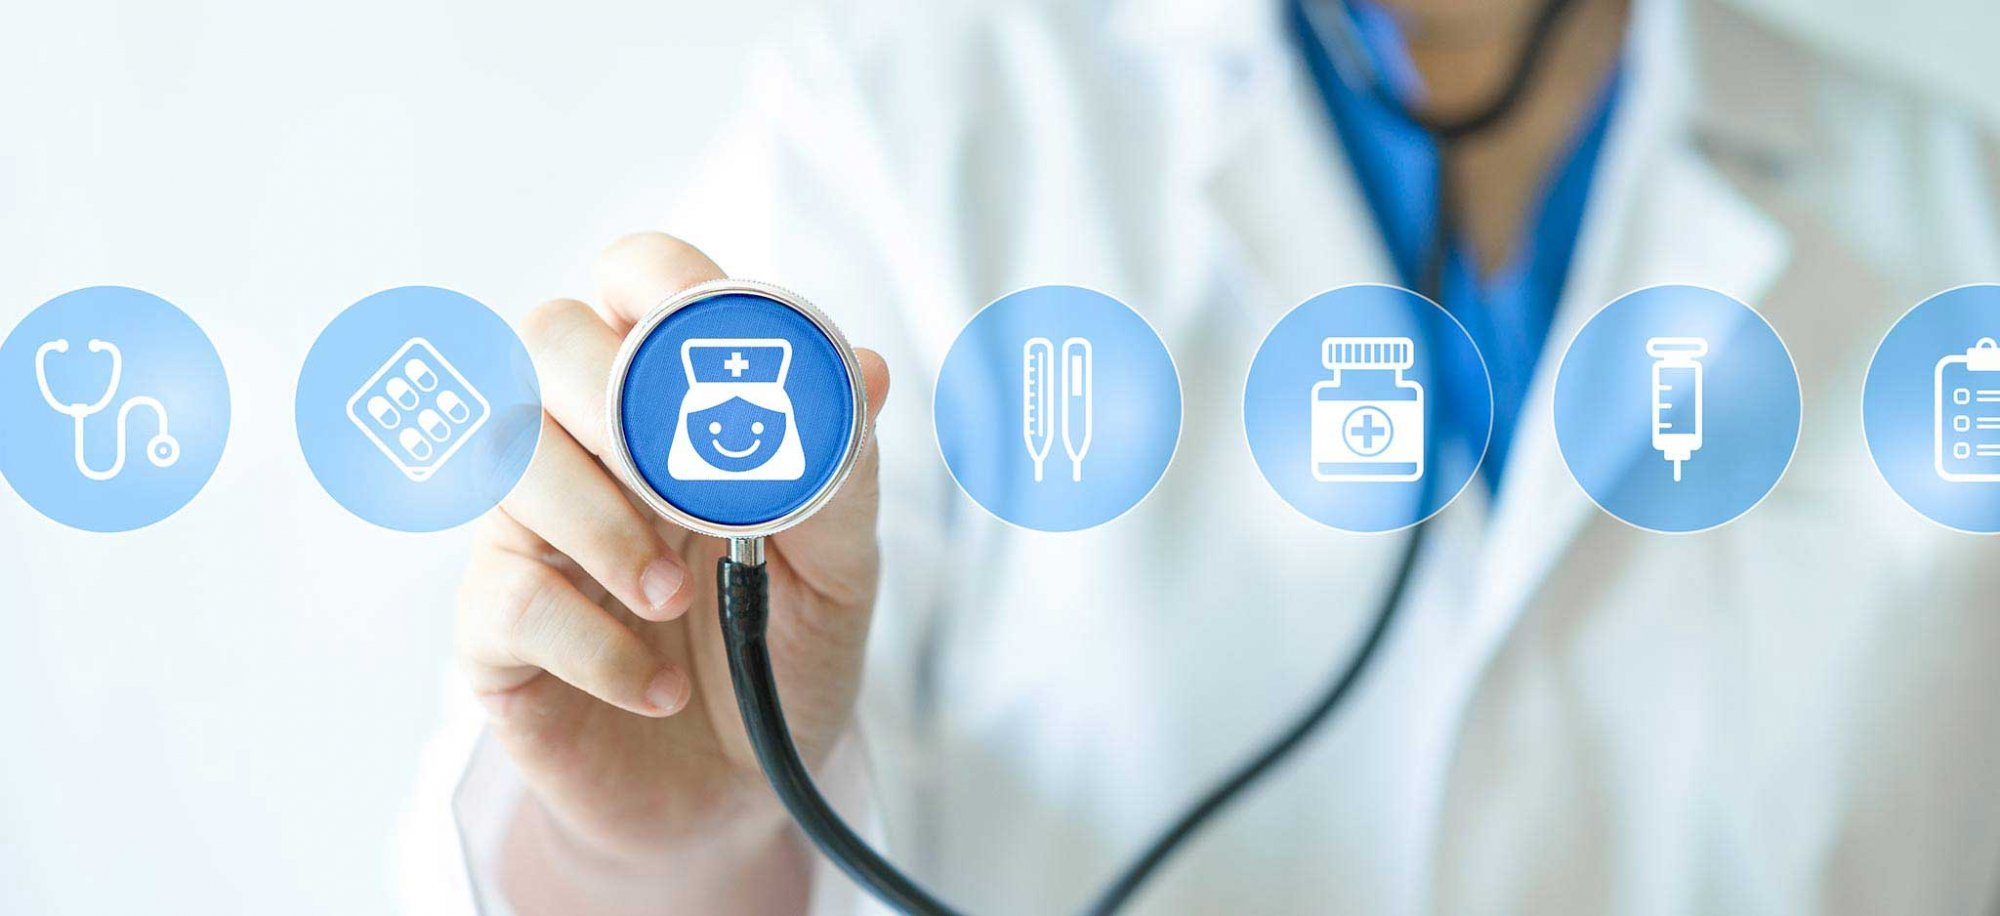 A doctor holds a stethoscope over a clip art icon of a nurse